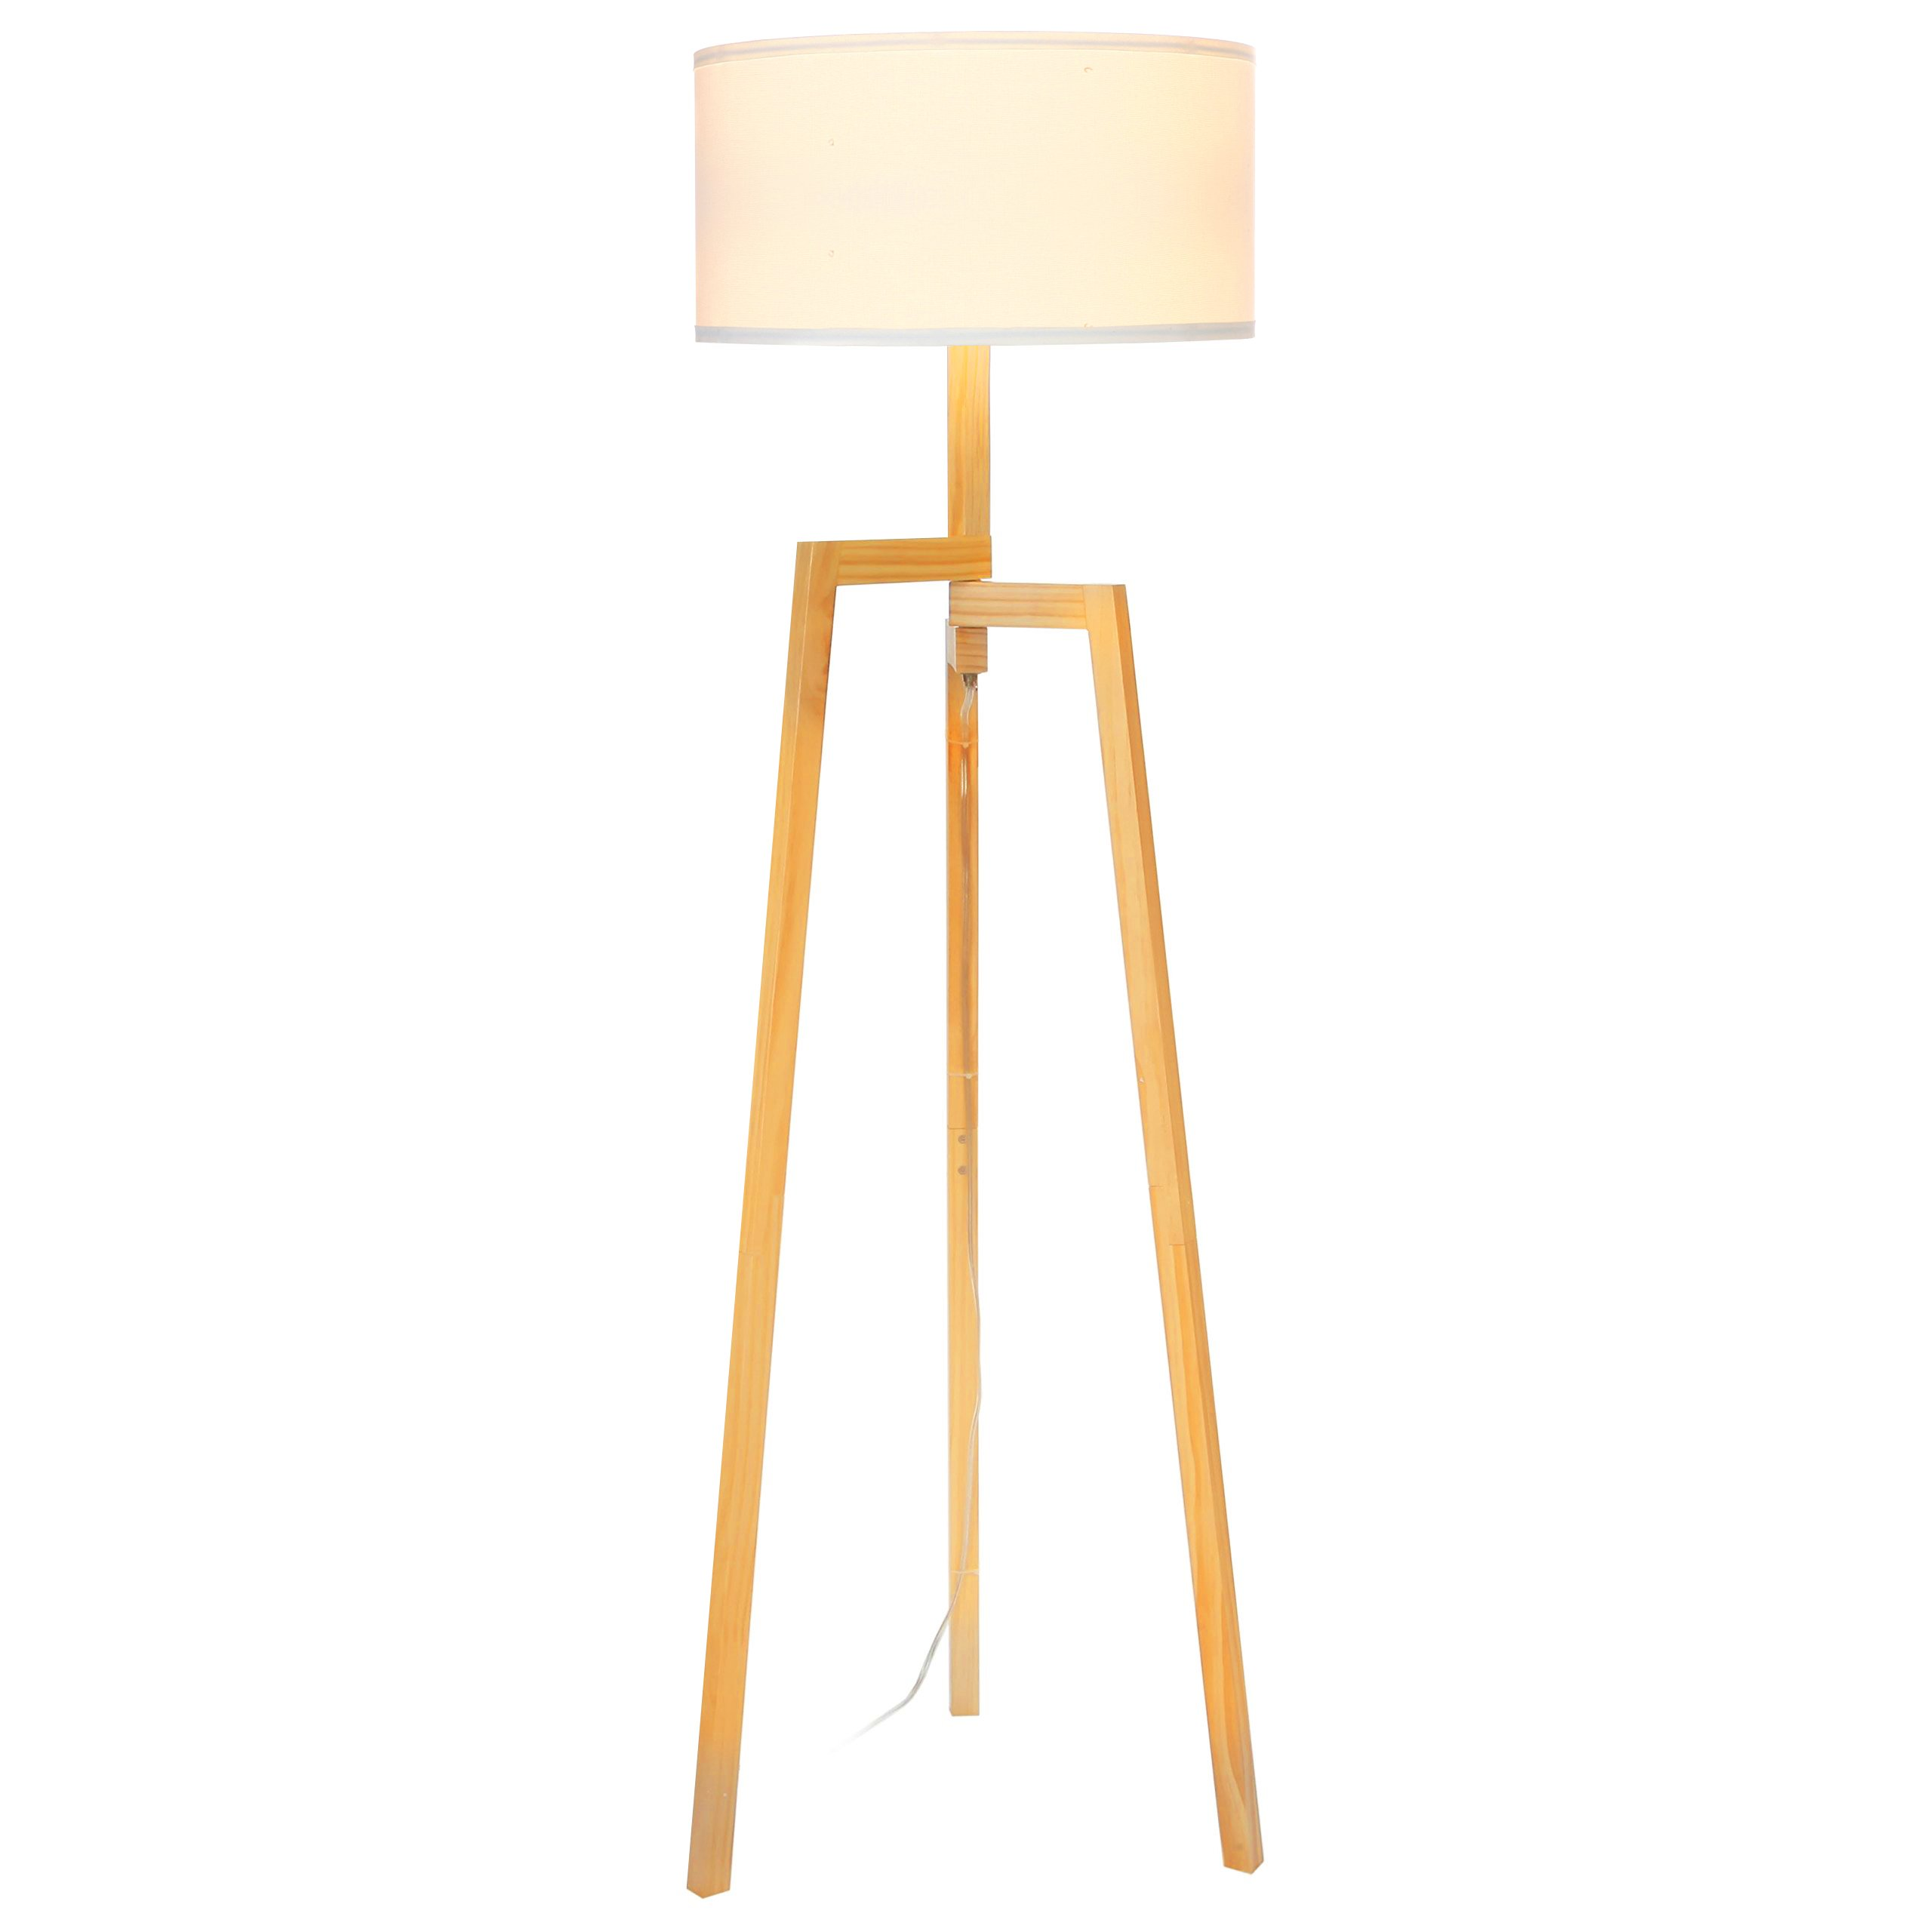 Brightech New Mia LED Tripod Floor Lamp– Modern Design Wood Mid Century Style Lighting for Contemporary Living or Family Rooms- Ambient Light Tall Standing Survey Lamp for Bedroom, Office- White Shade by Brightech (Image #3)